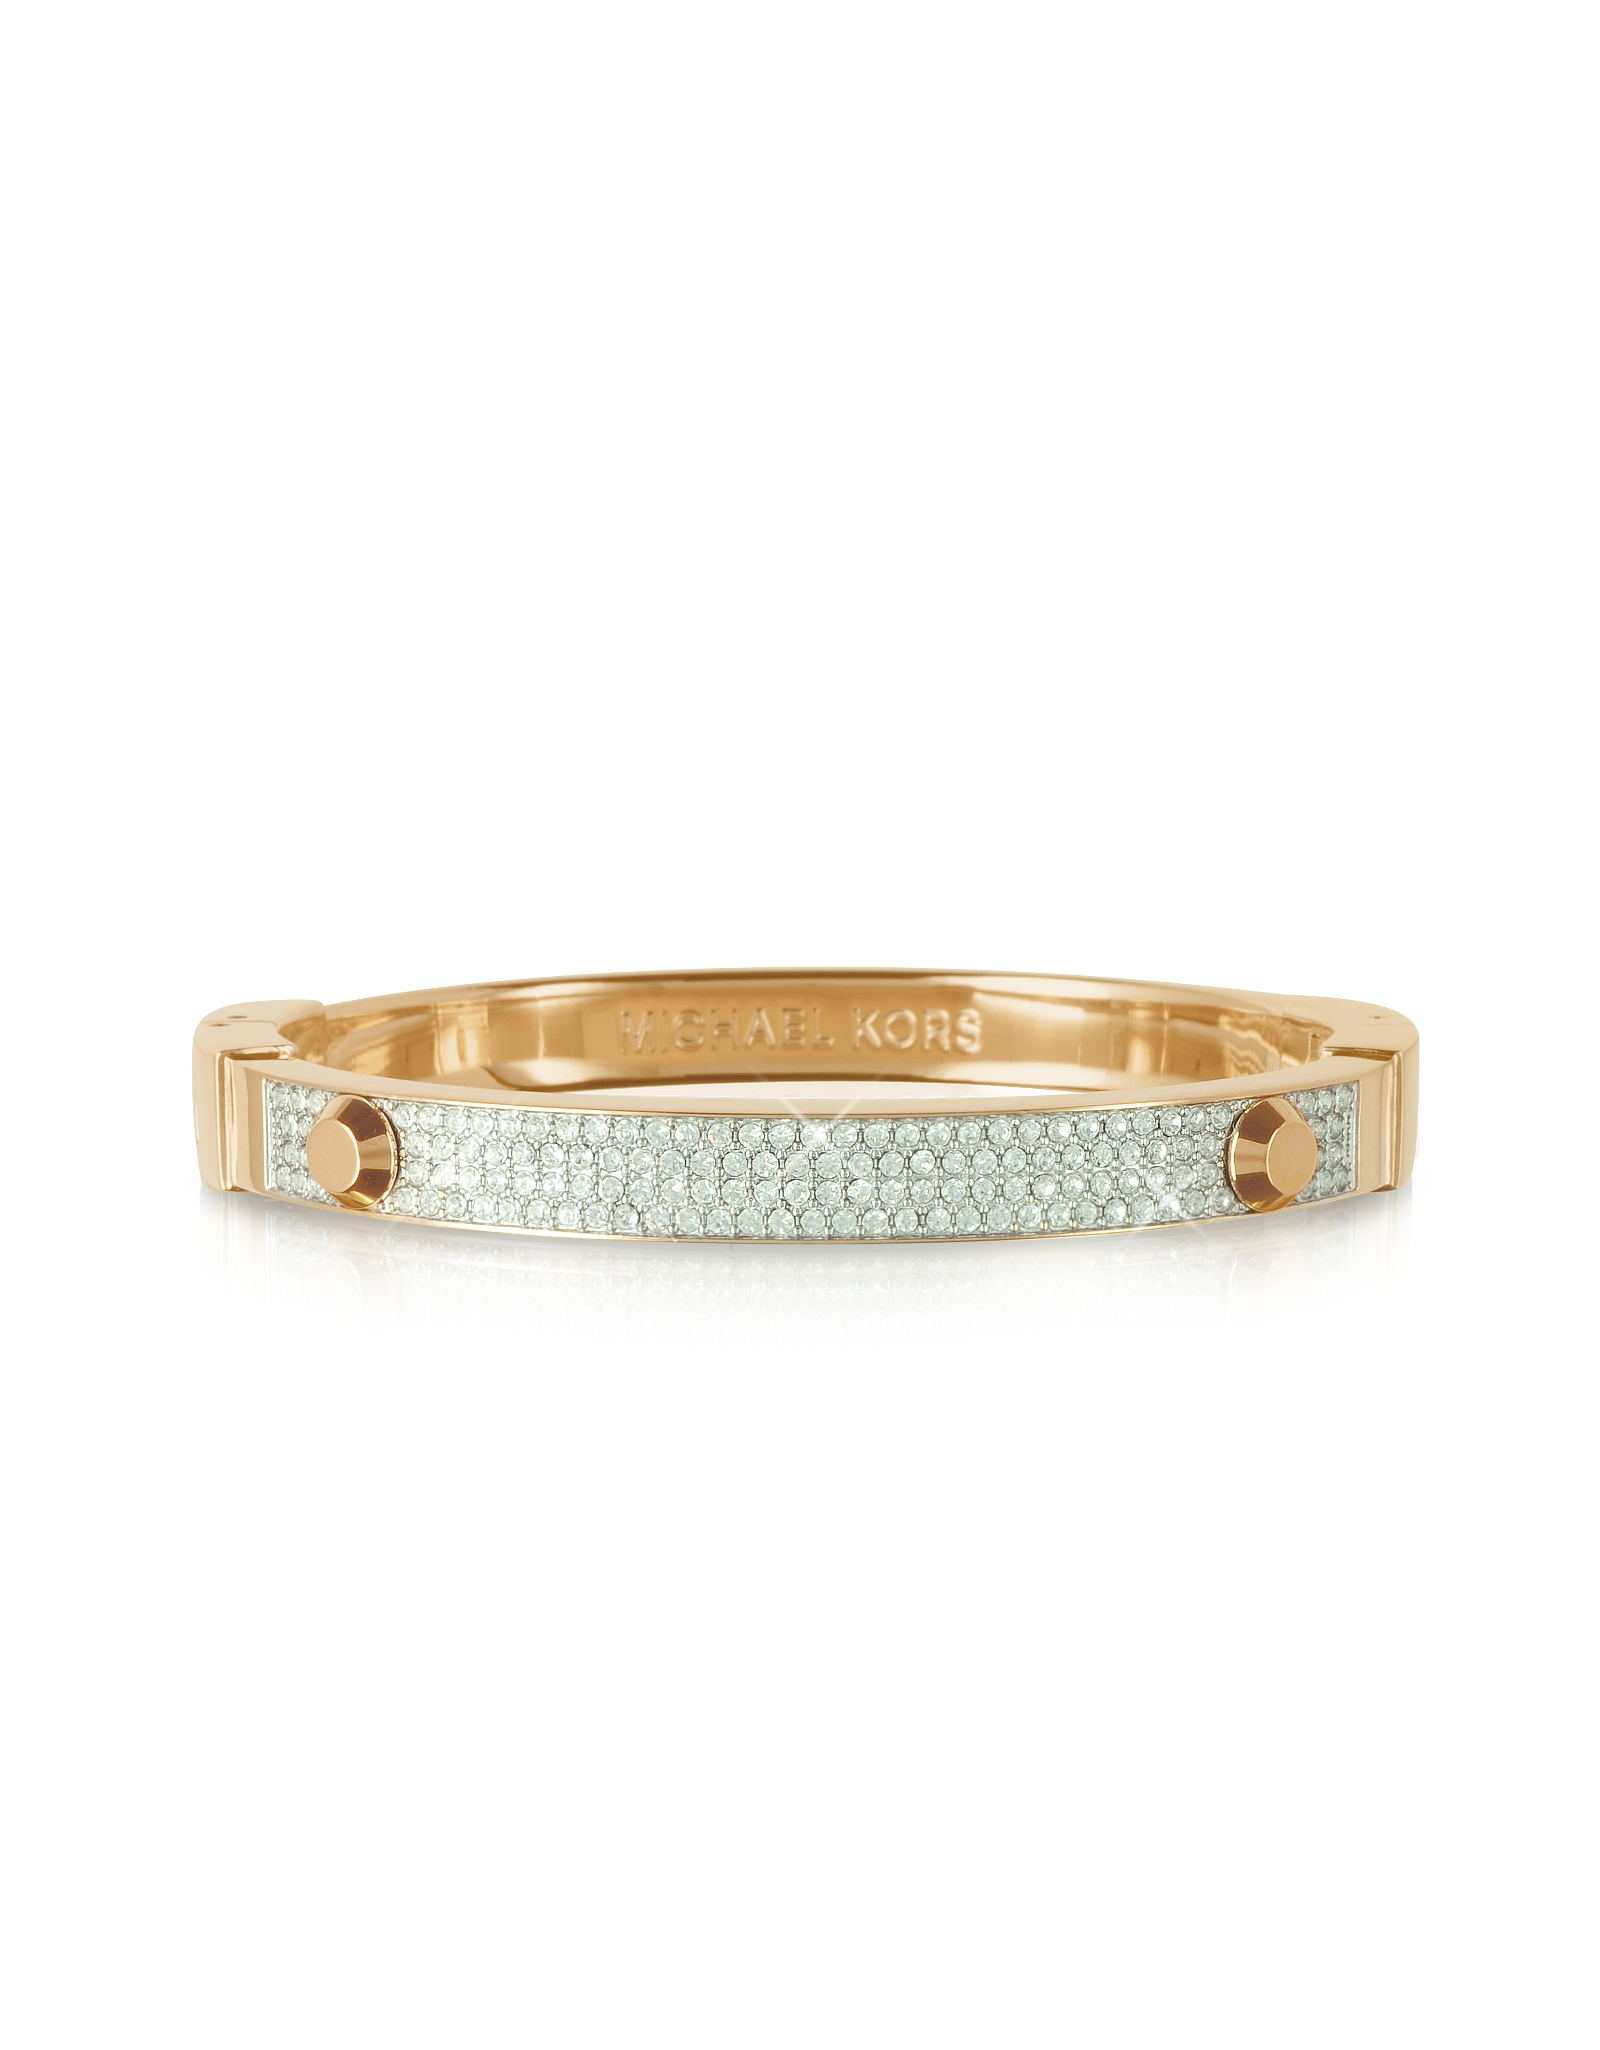 ... Pave Hinge Bracelet Golden Michael Kors | Car Interior Design